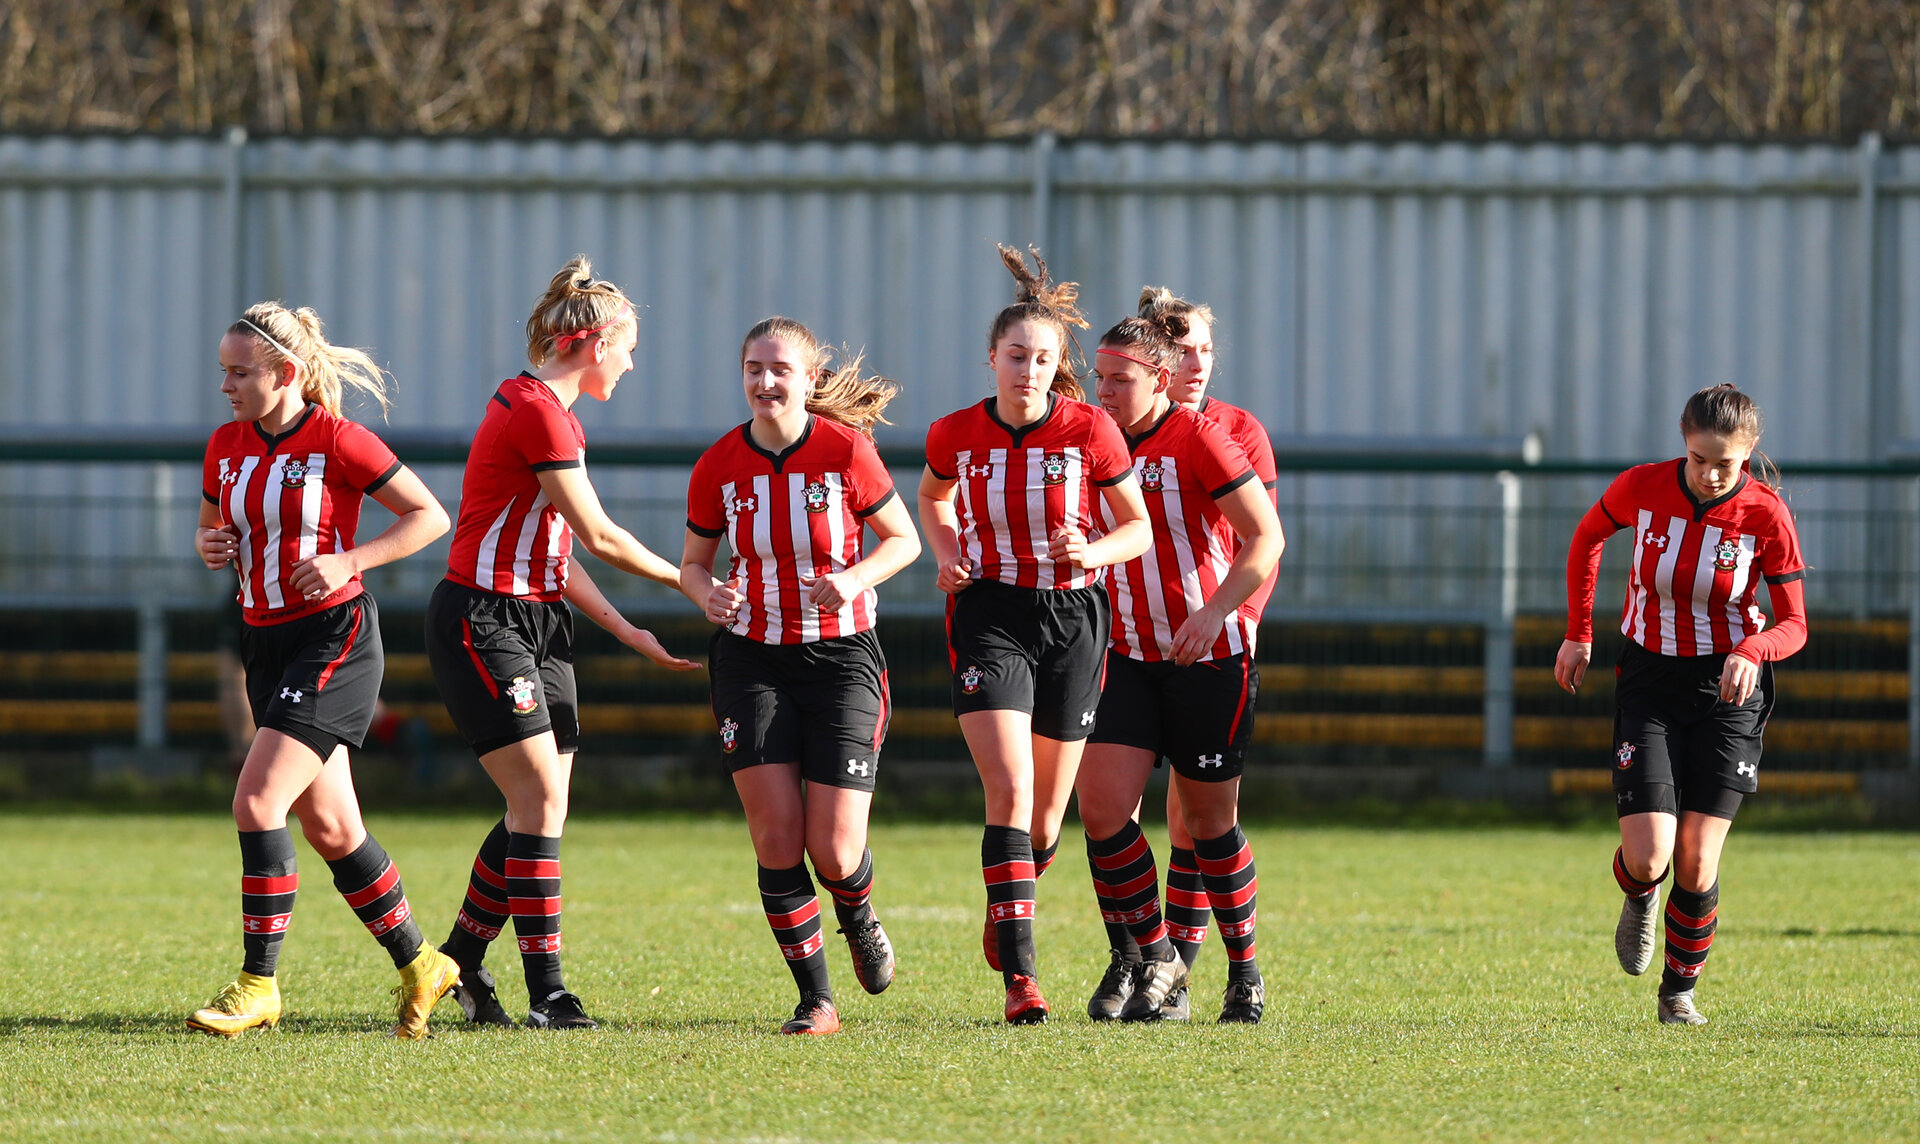 Southampton celebrate a goal during the Southern Region Women's Premier League match between Southampton and Oxford City, The Westwood Stadium, AFC Totton, Totton, Southampton, 10th February 2019